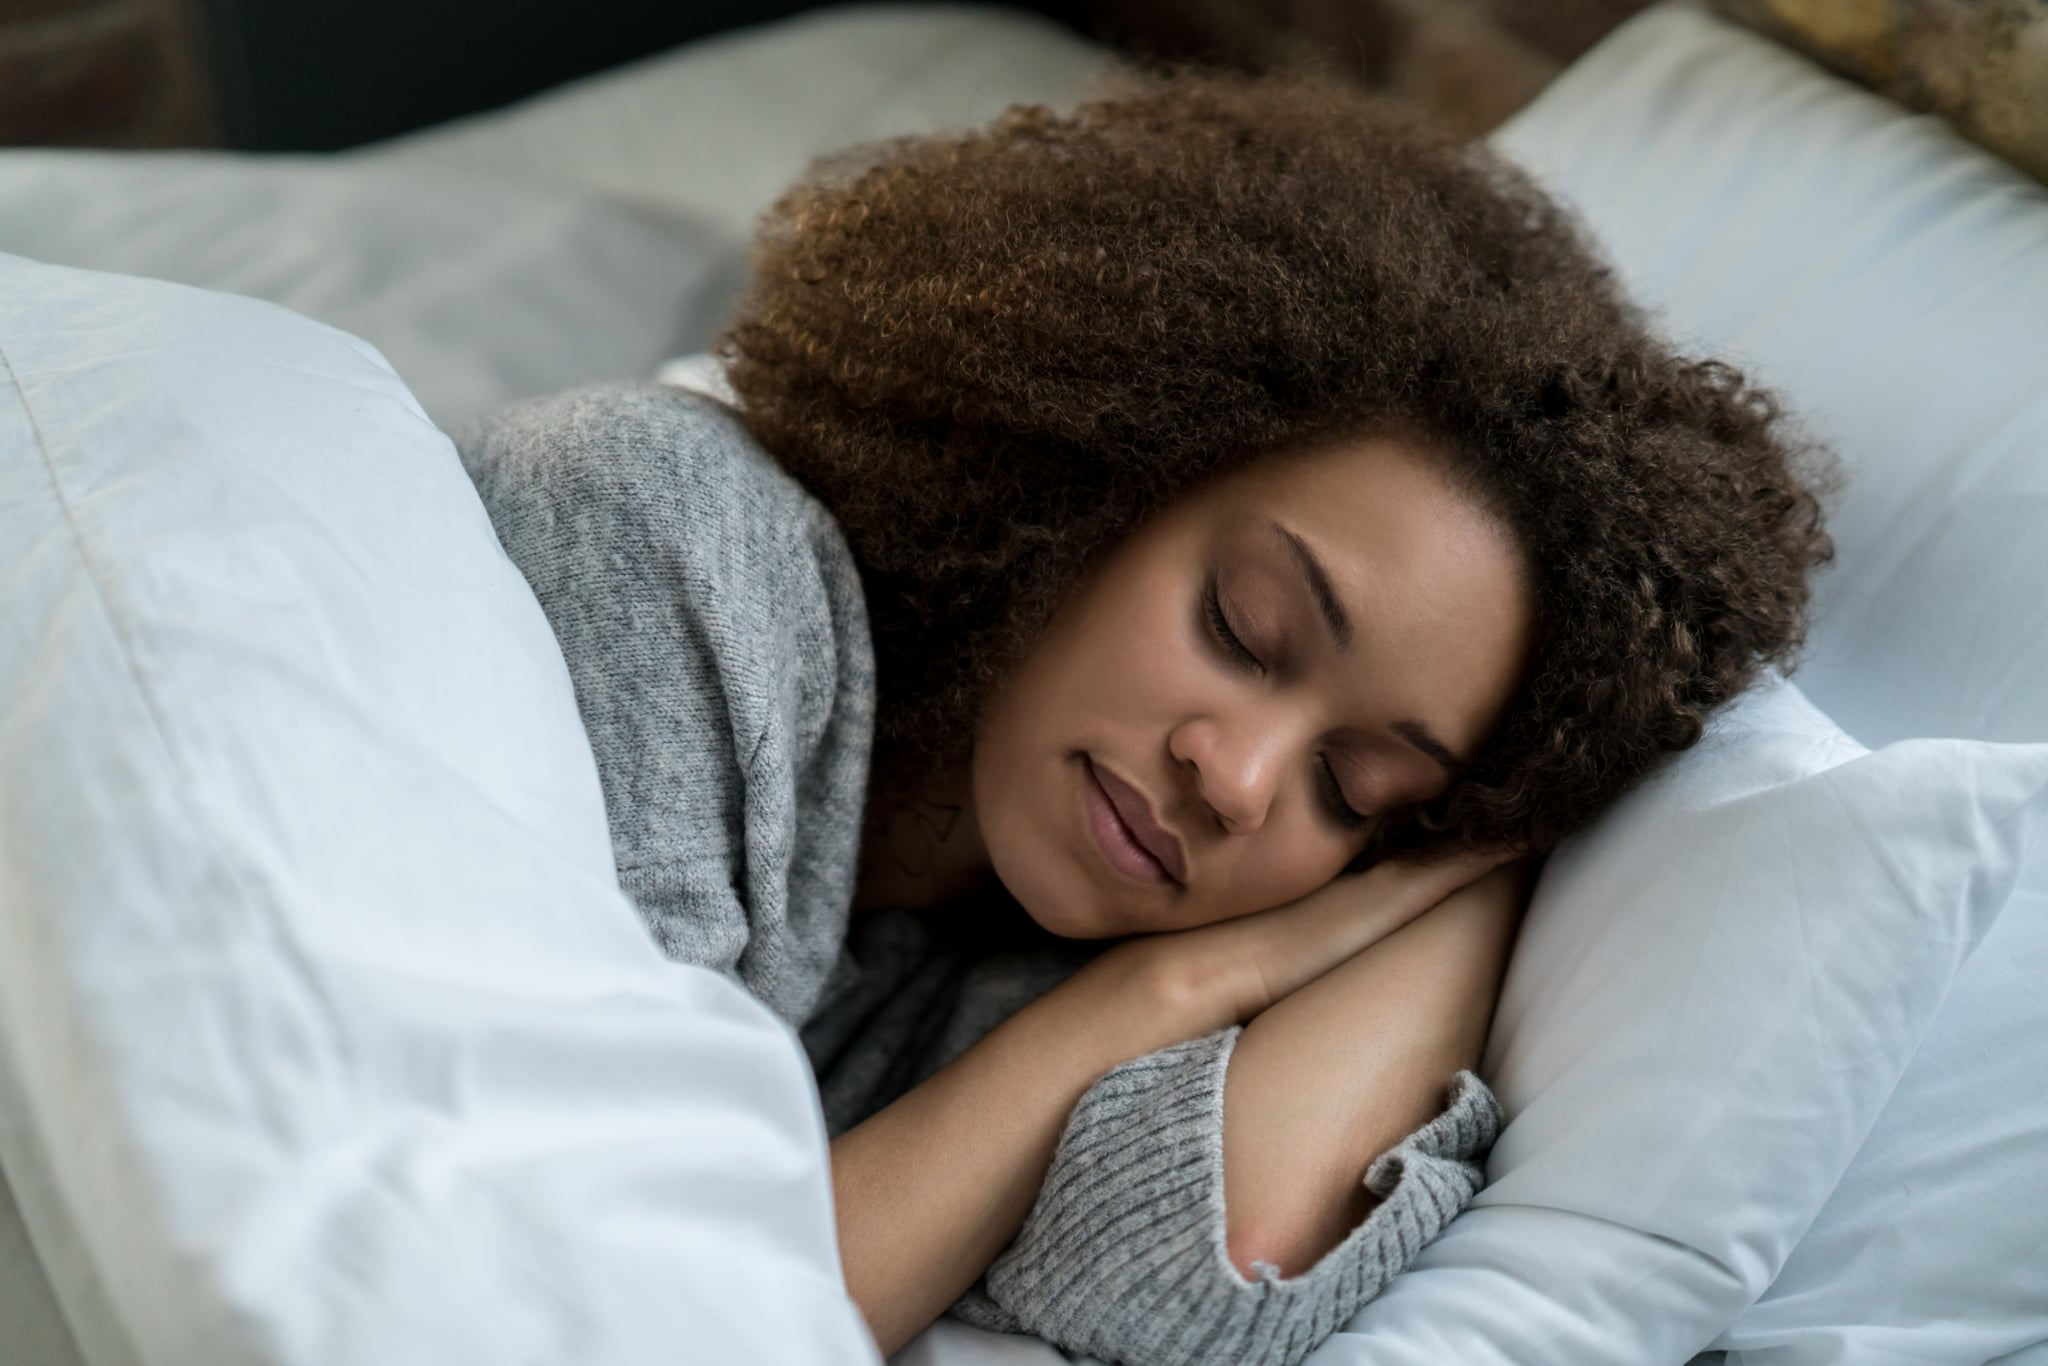 Portrait of a beautiful African American woman sleeping in bed and looking very peaceful - lifestyle concepts